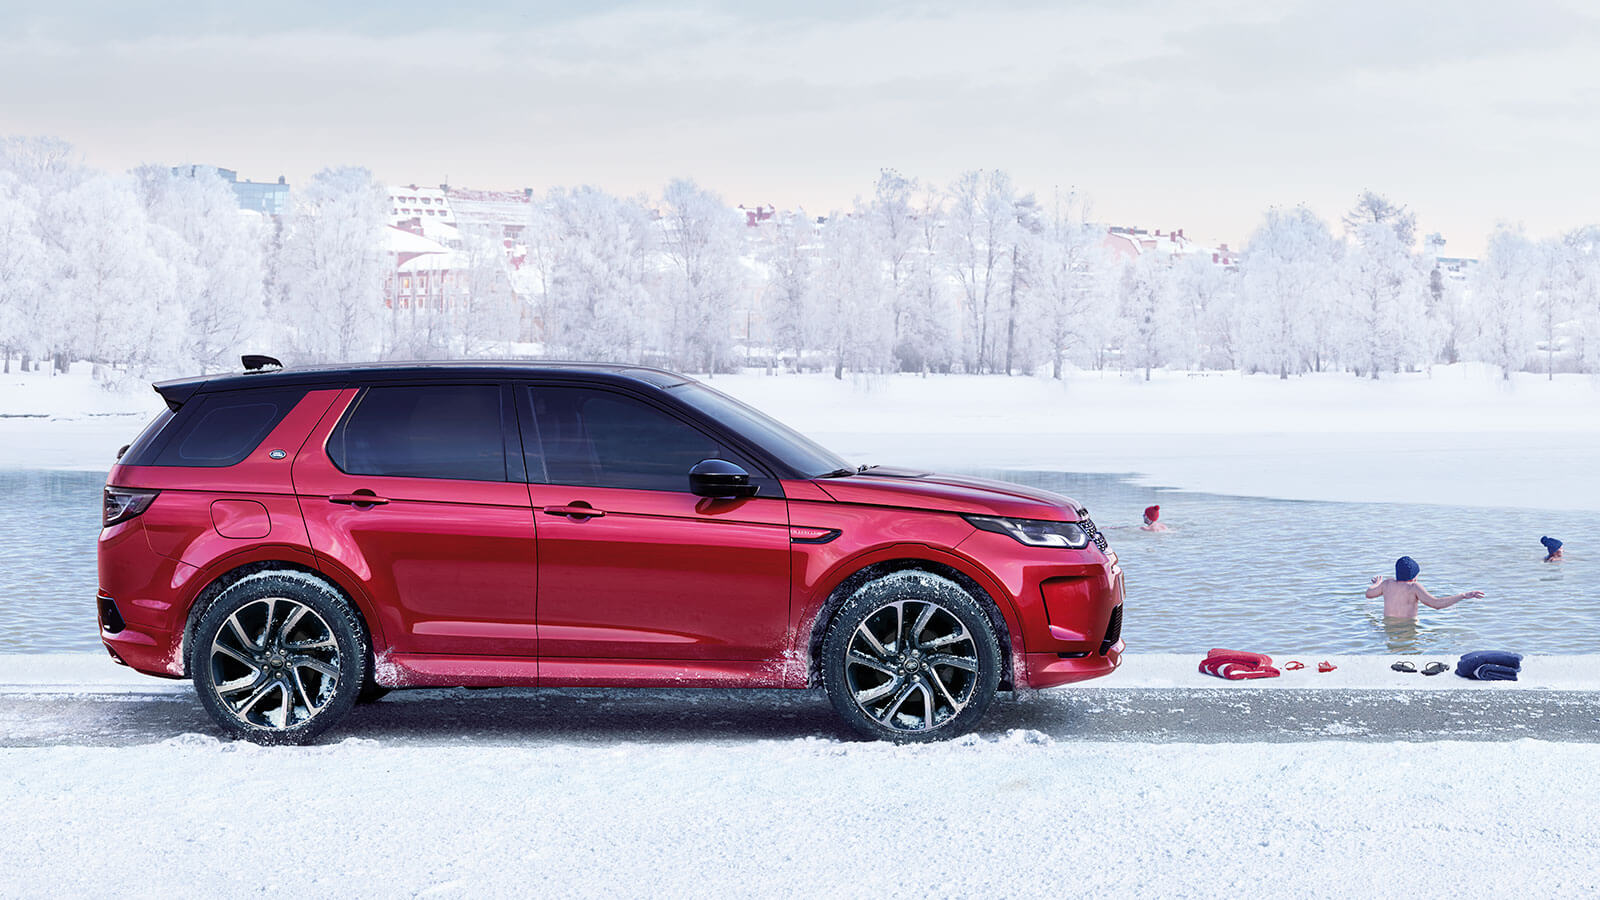 DISCOVERY SPORT NORDIC EDITION